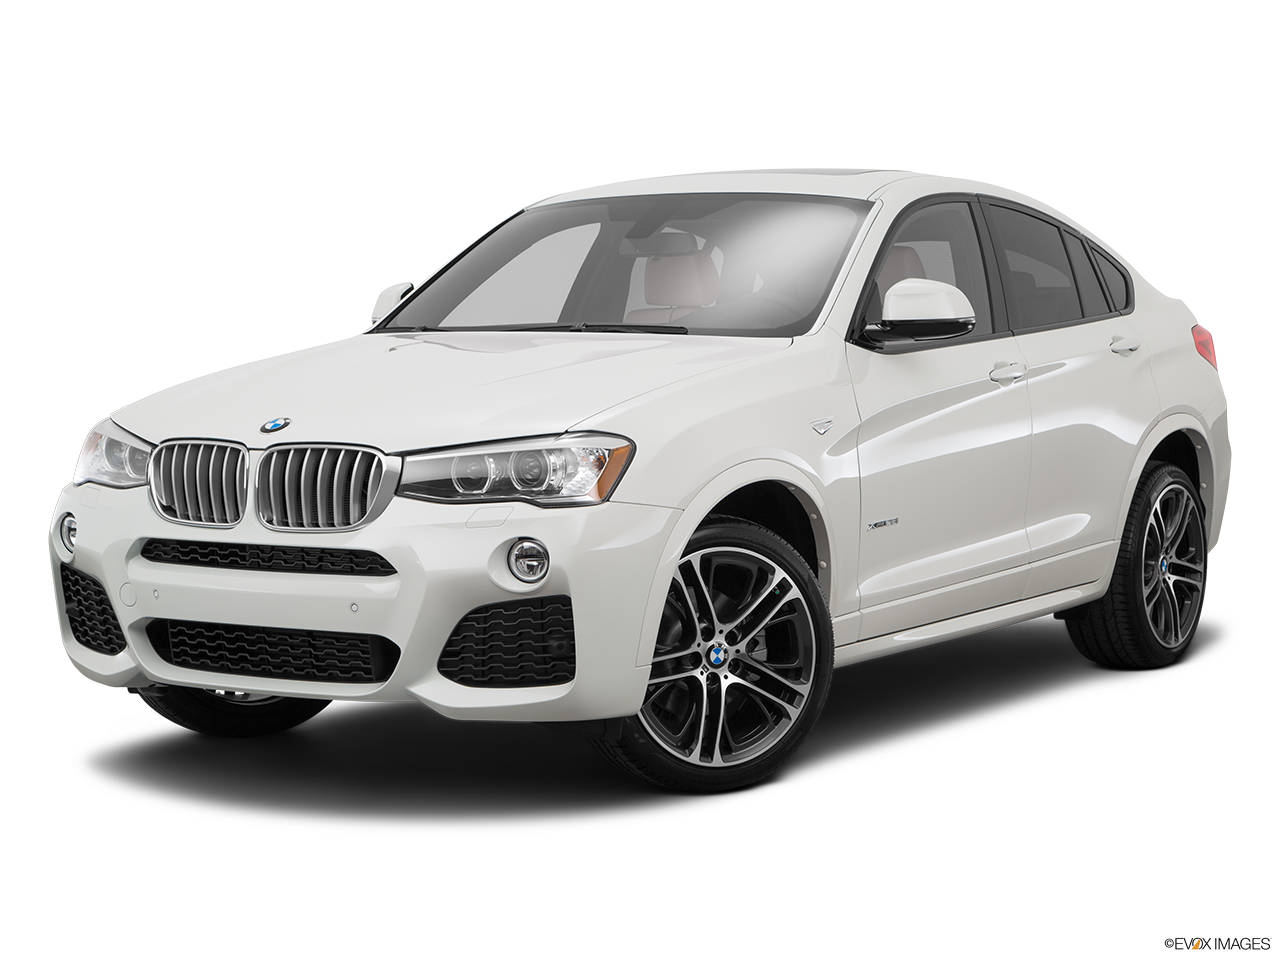 Comparison Bmw X4 Xdrive35i 2016 Vs Bmw X3 Xdrive